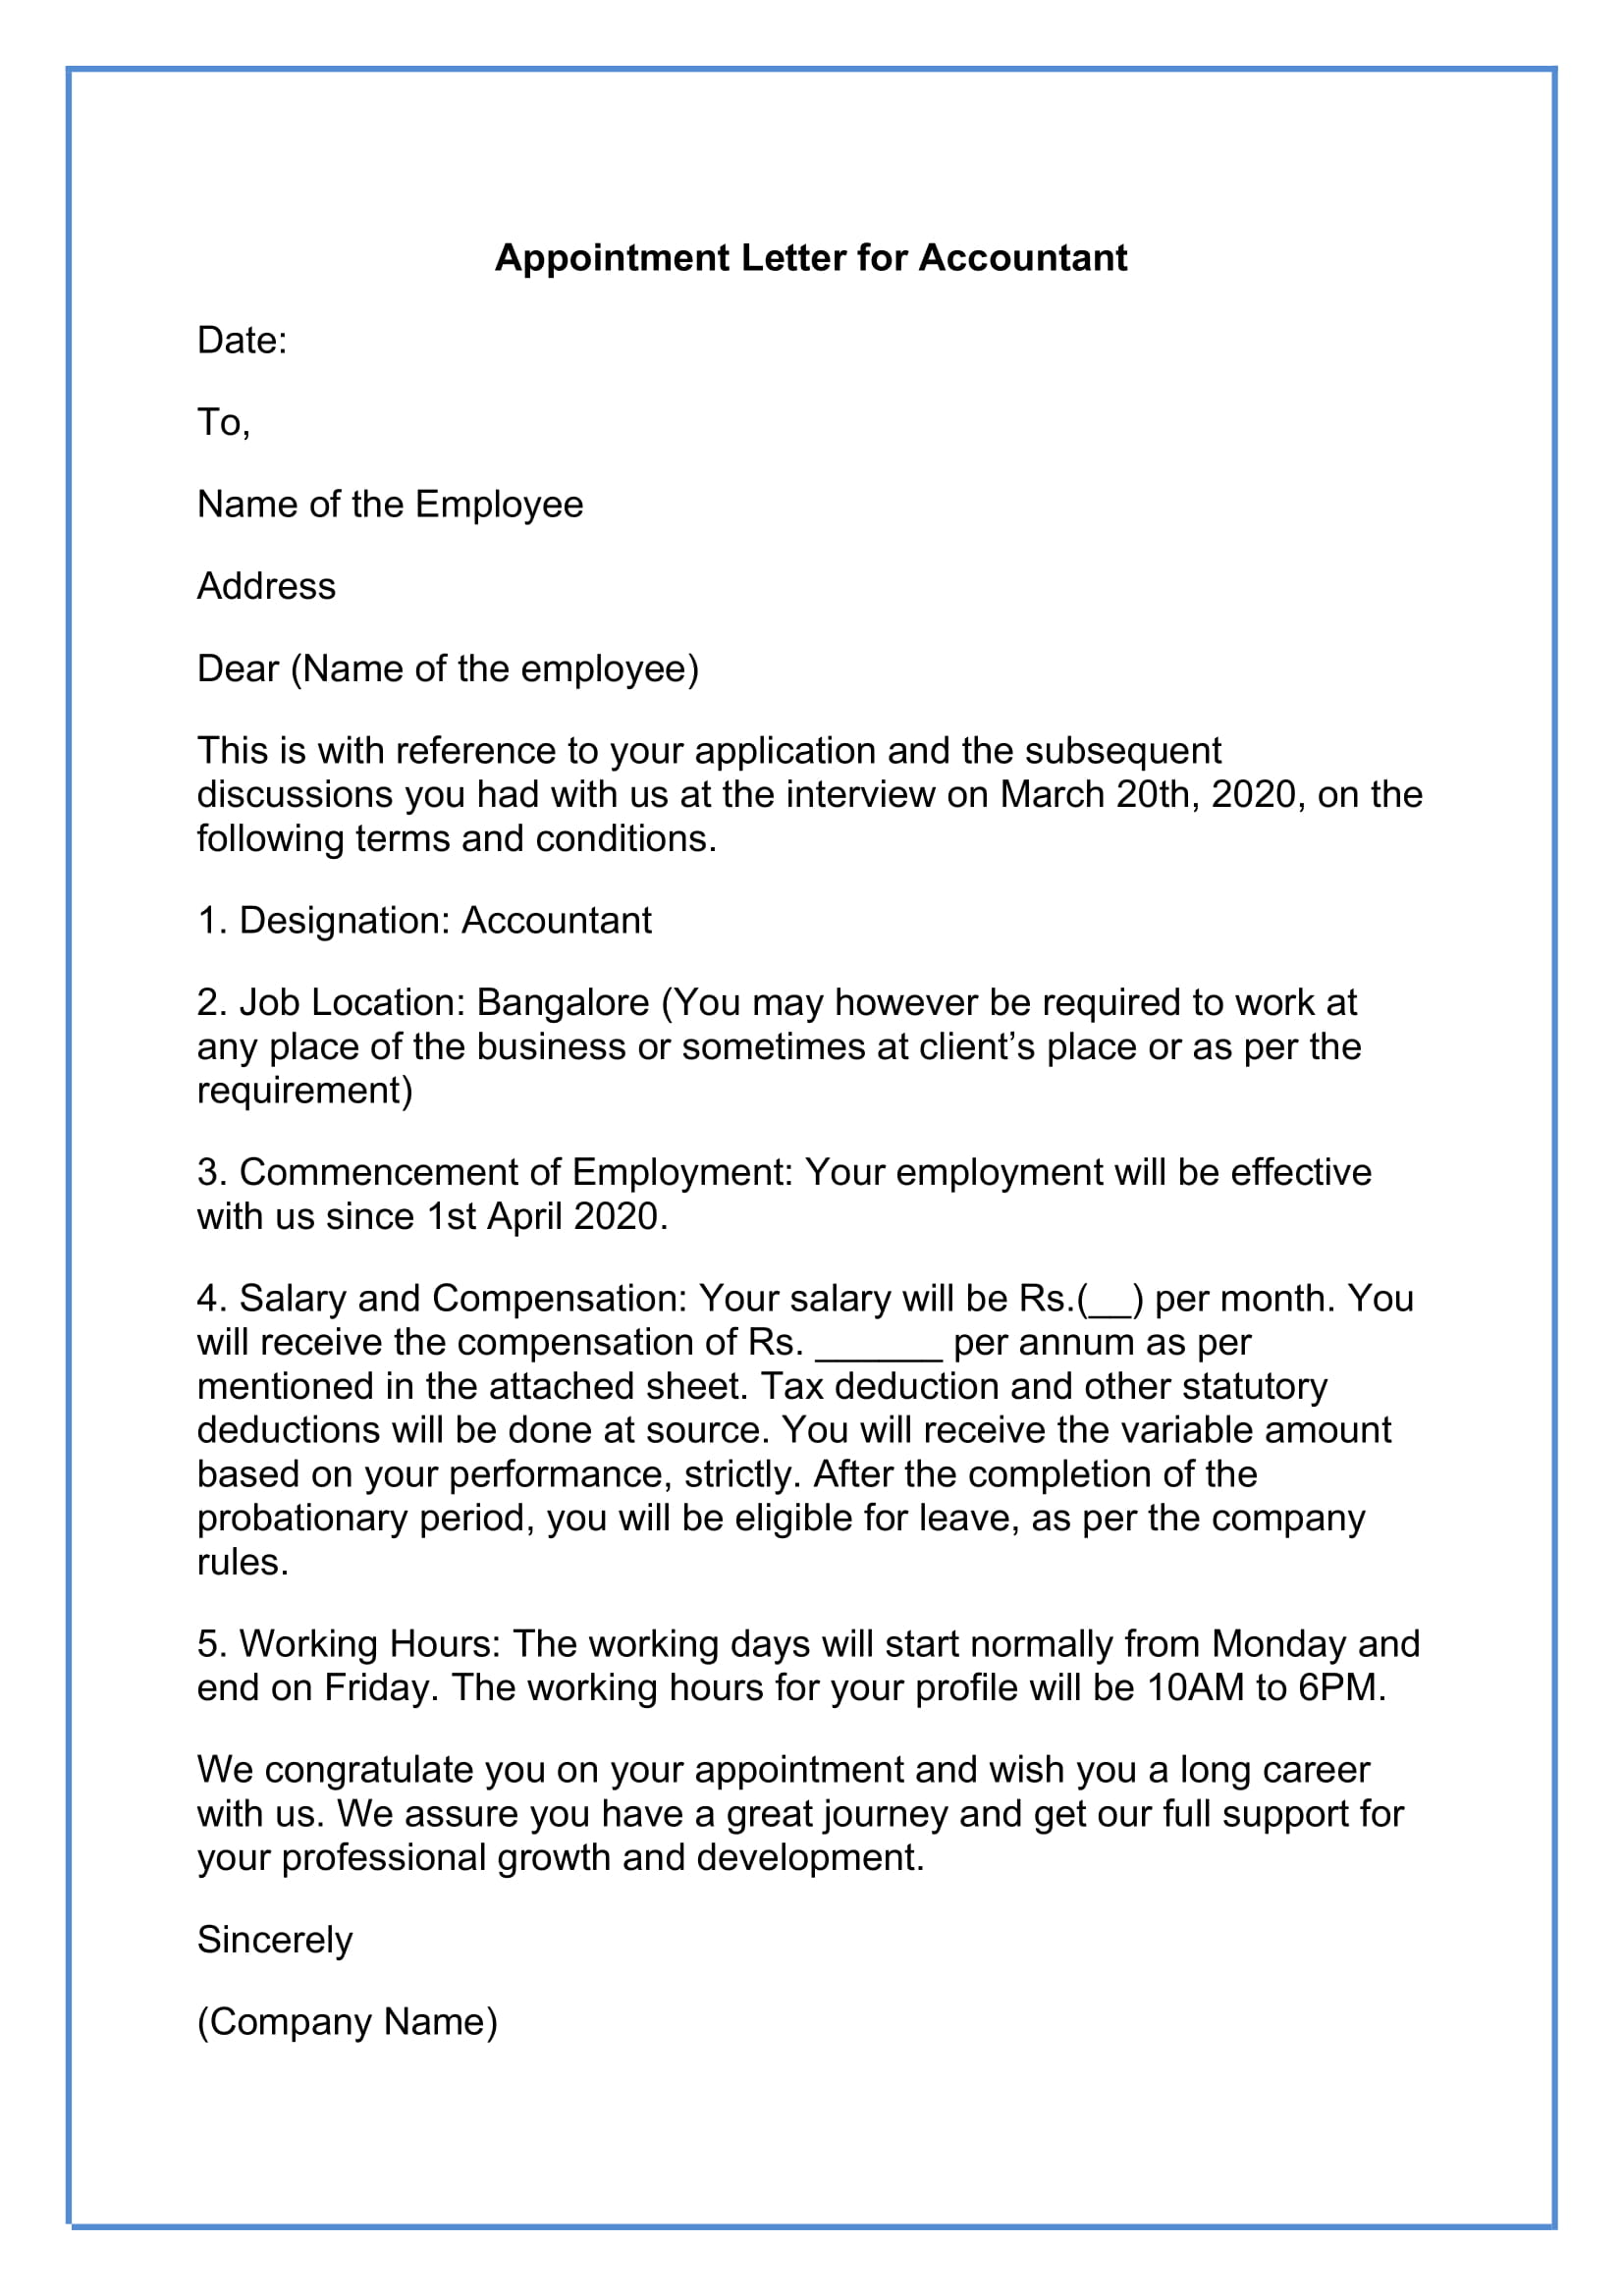 Job Appointment Letter for Accountant